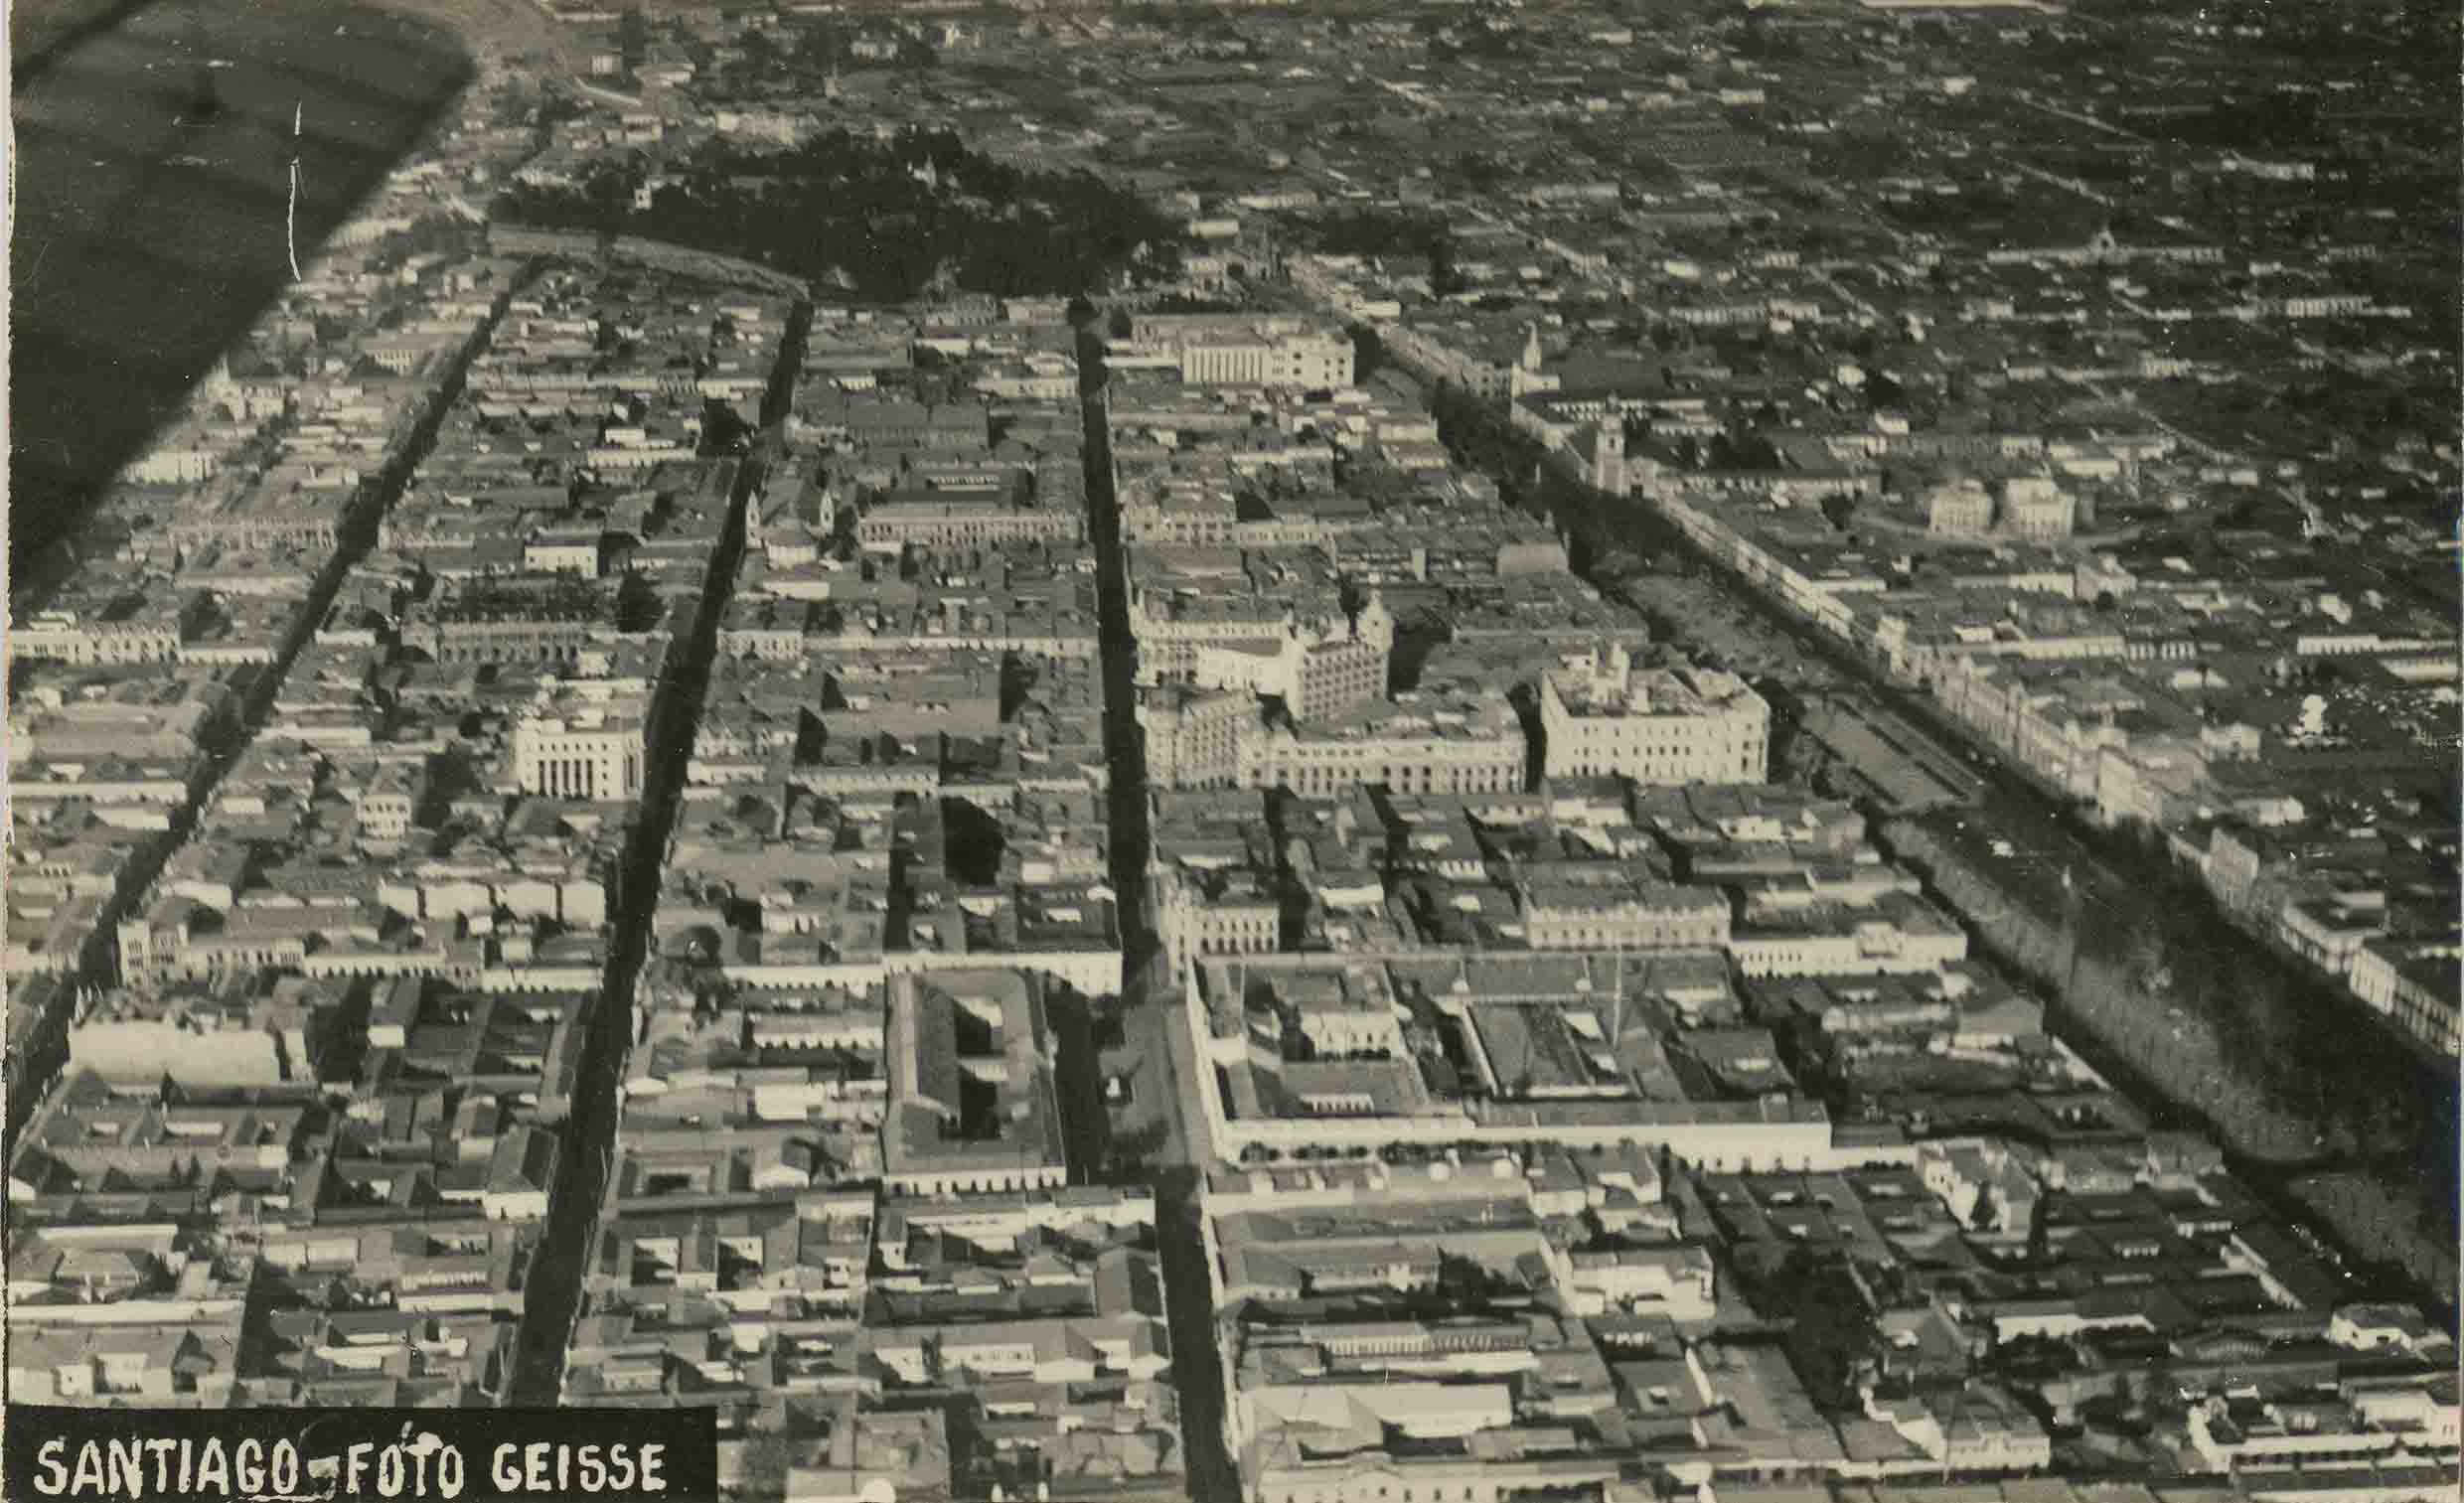 Enterreno - Fotos históricas de chile - fotos antiguas de Chile - Vista aérea de Santiago ca. 1927